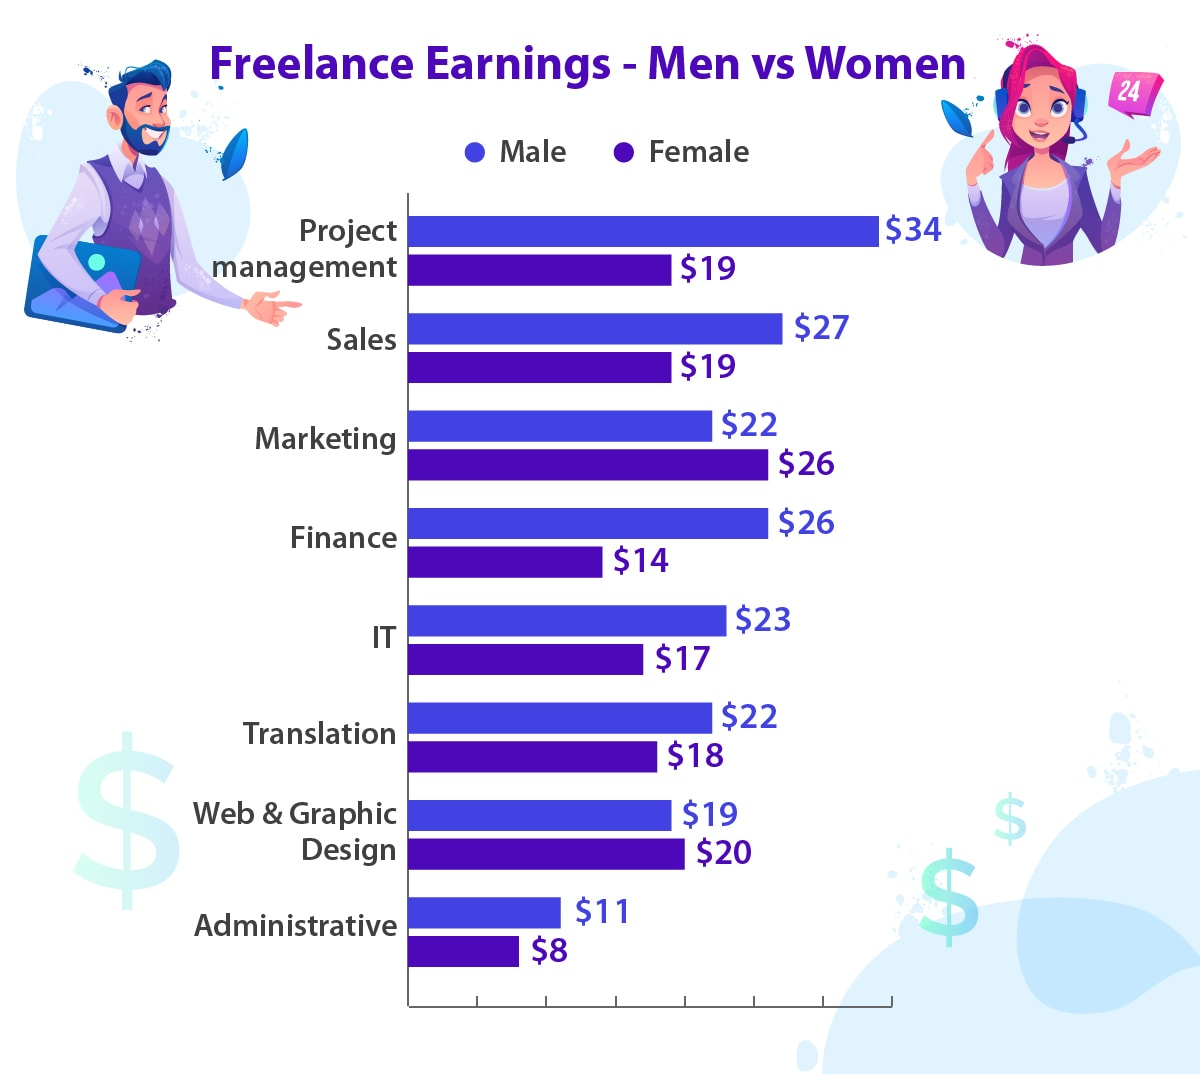 The differences between what men and women earn as freelancers in different positions.